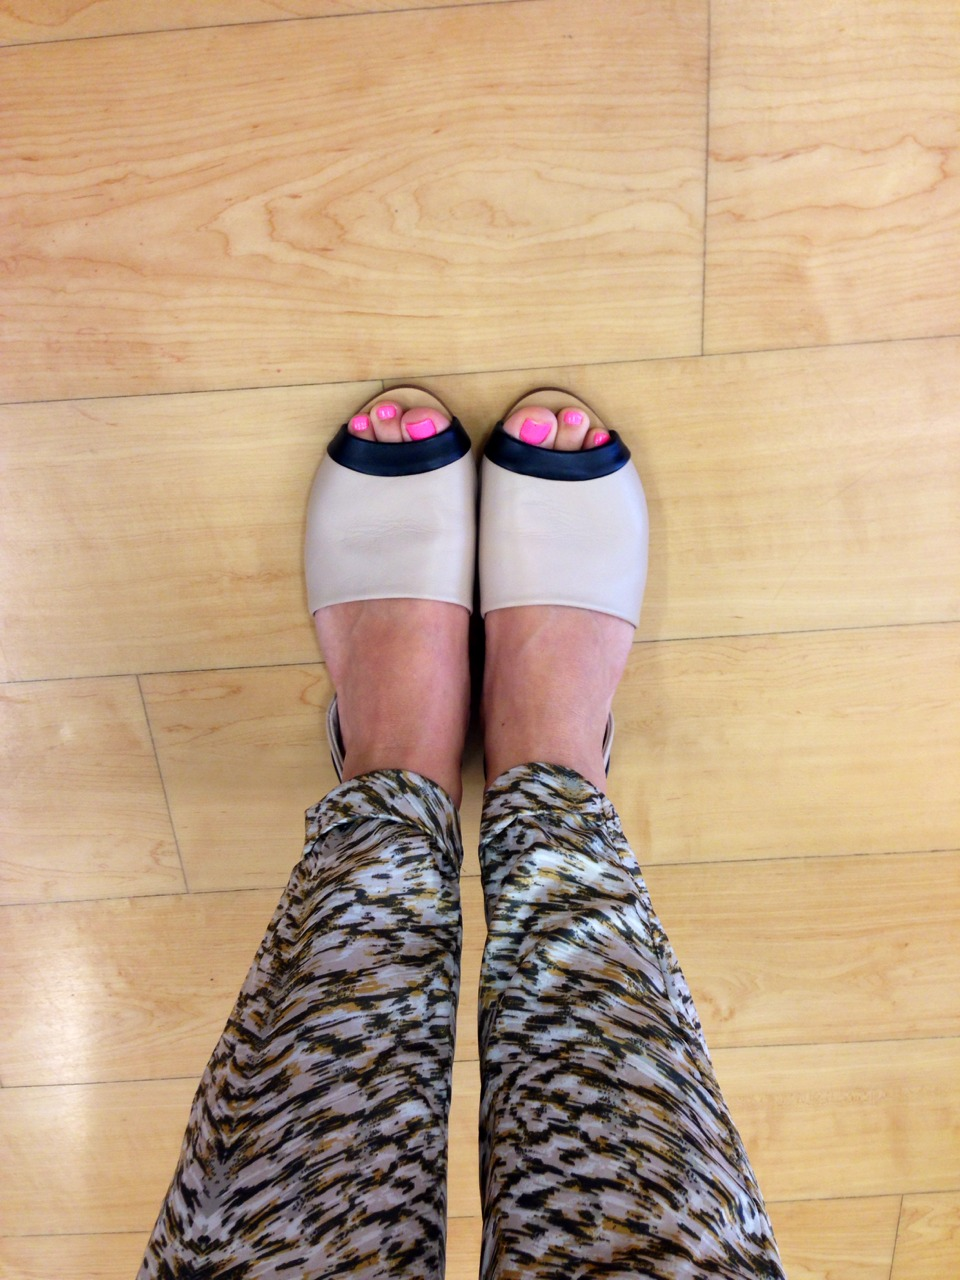 """Stopped into Marshall's on my way back to work because my """"flip flops of pain"""" were causing some serious blisters. Found these chic flats by Steve Madden on sale- huge win!"""